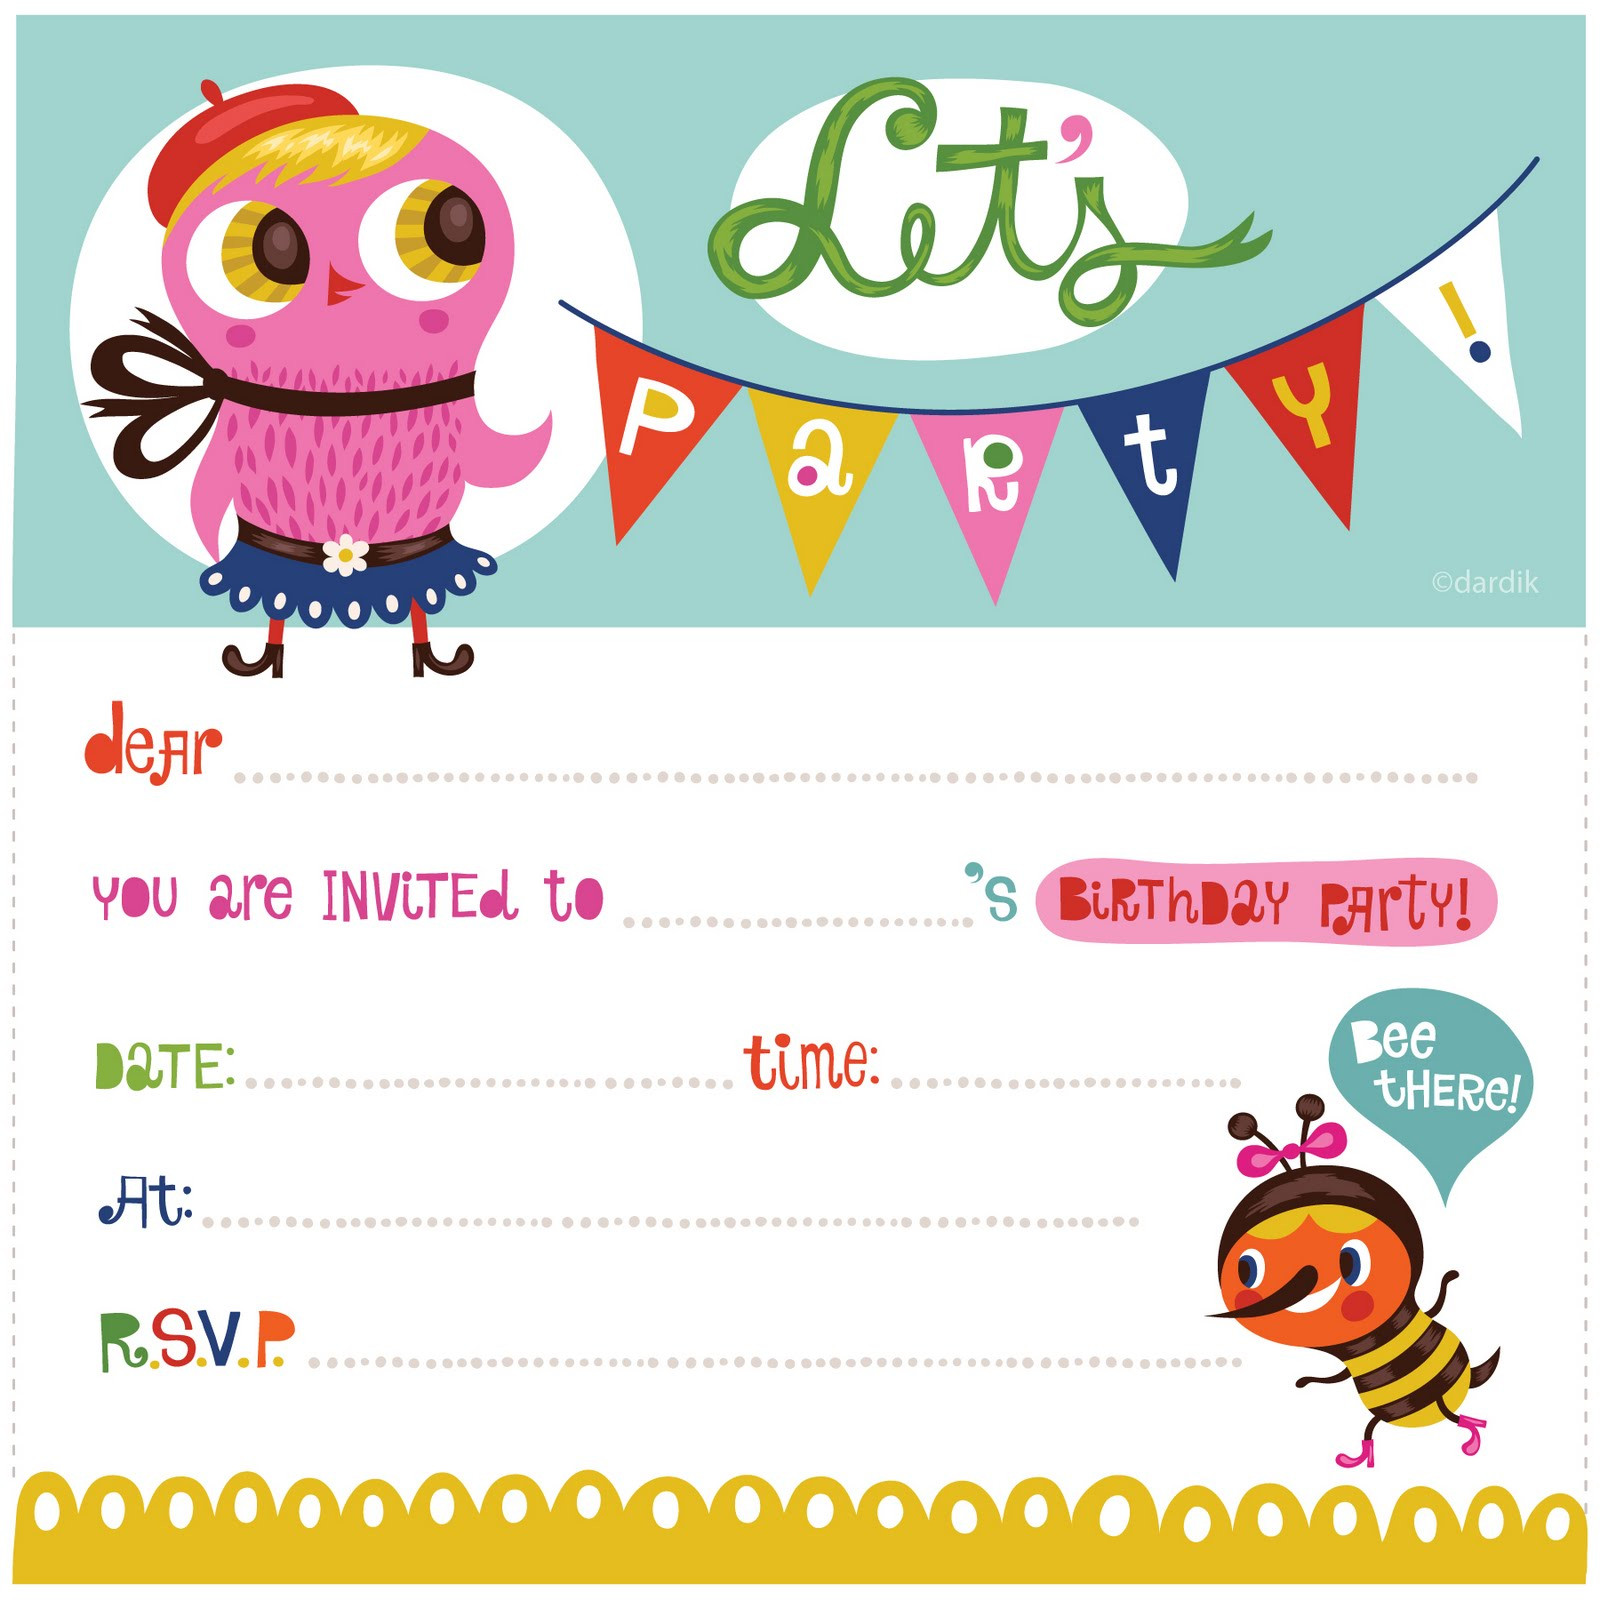 Best ideas about Printable Birthday Invitations . Save or Pin Free Printable Birthday Party Invitations Now.